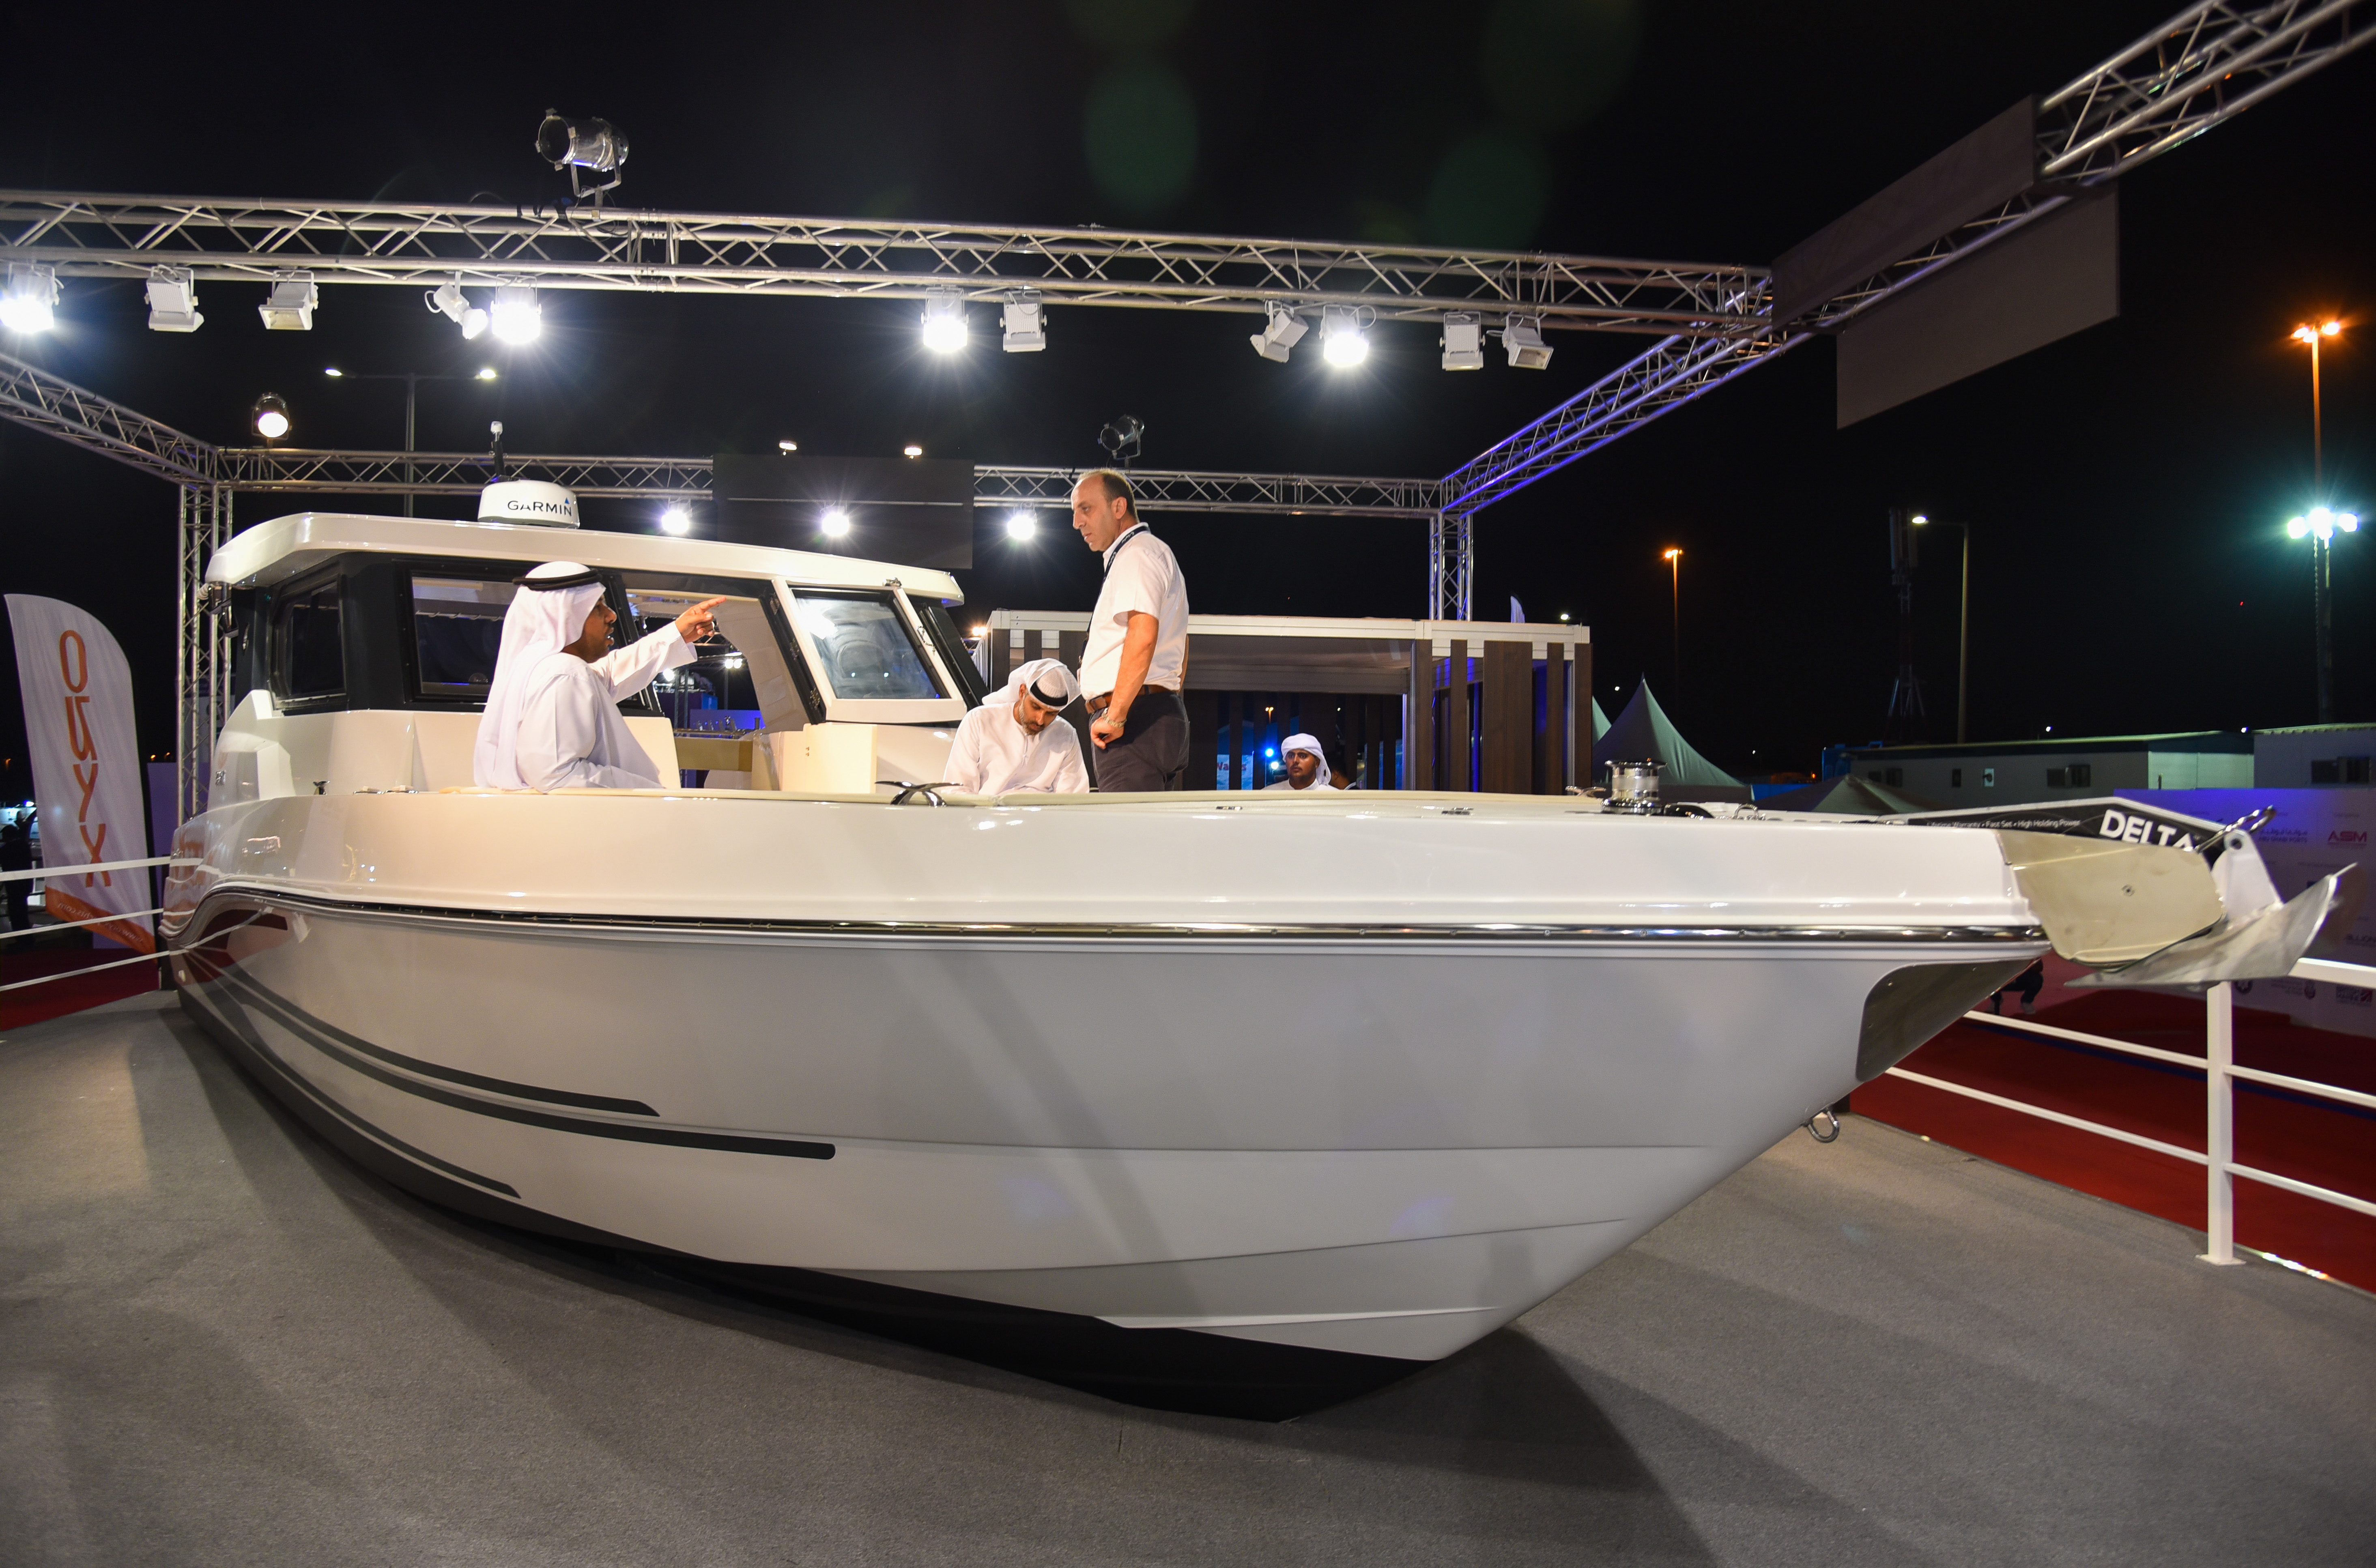 Gulf Craft at Abu Dhabi Boat Show 2018 Day 2(19).jpg